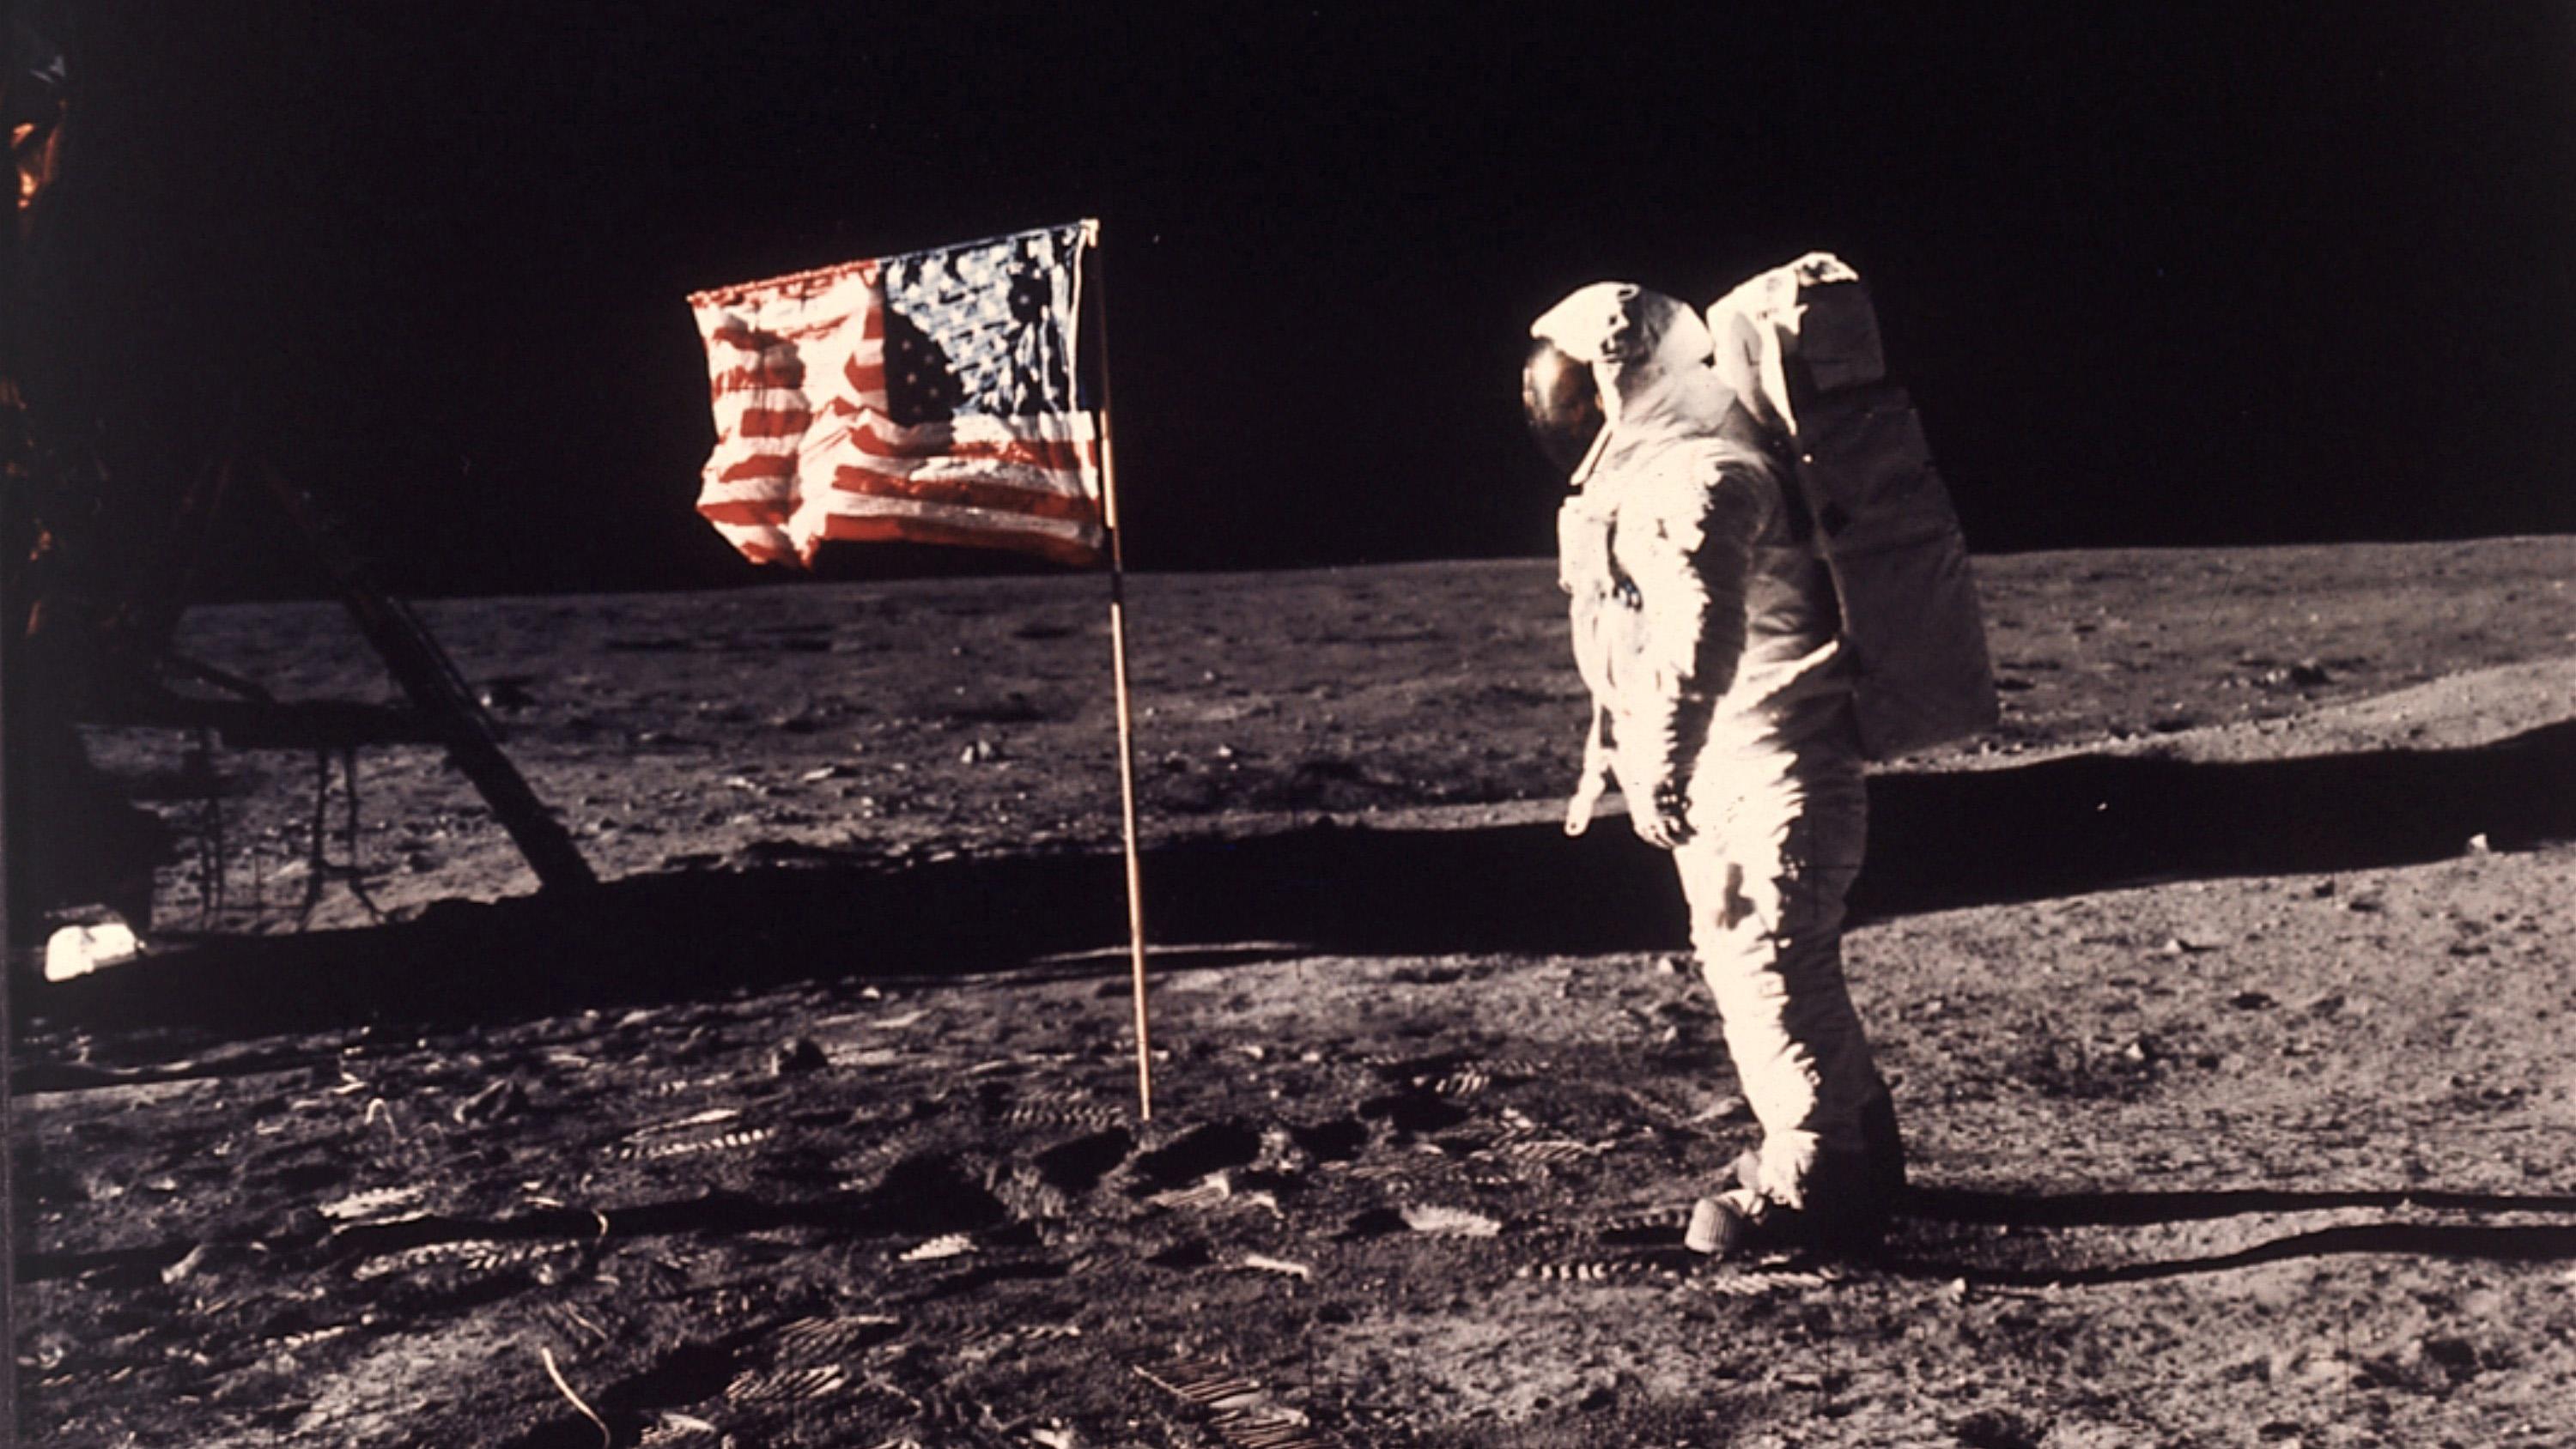 "Astronaut Edwin E. ""Buzz"" Aldrin Jr. poses for a photograph beside the U.S. flag deployed on the moon during the Apollo 11 mission on July 20, 1969. Aldrin and fellow astronaut Neil Armstrong were the first men to walk on the lunar surface with temperatures ranging from 243 degrees above to 279 degrees below zero. Astronaut Michael Collins flew the command module. The trio was launched to the moon by a Saturn V launch vehicle at 9:32 a.m. EDT, July 16, 1969. They departed the moon July 21, 1969"